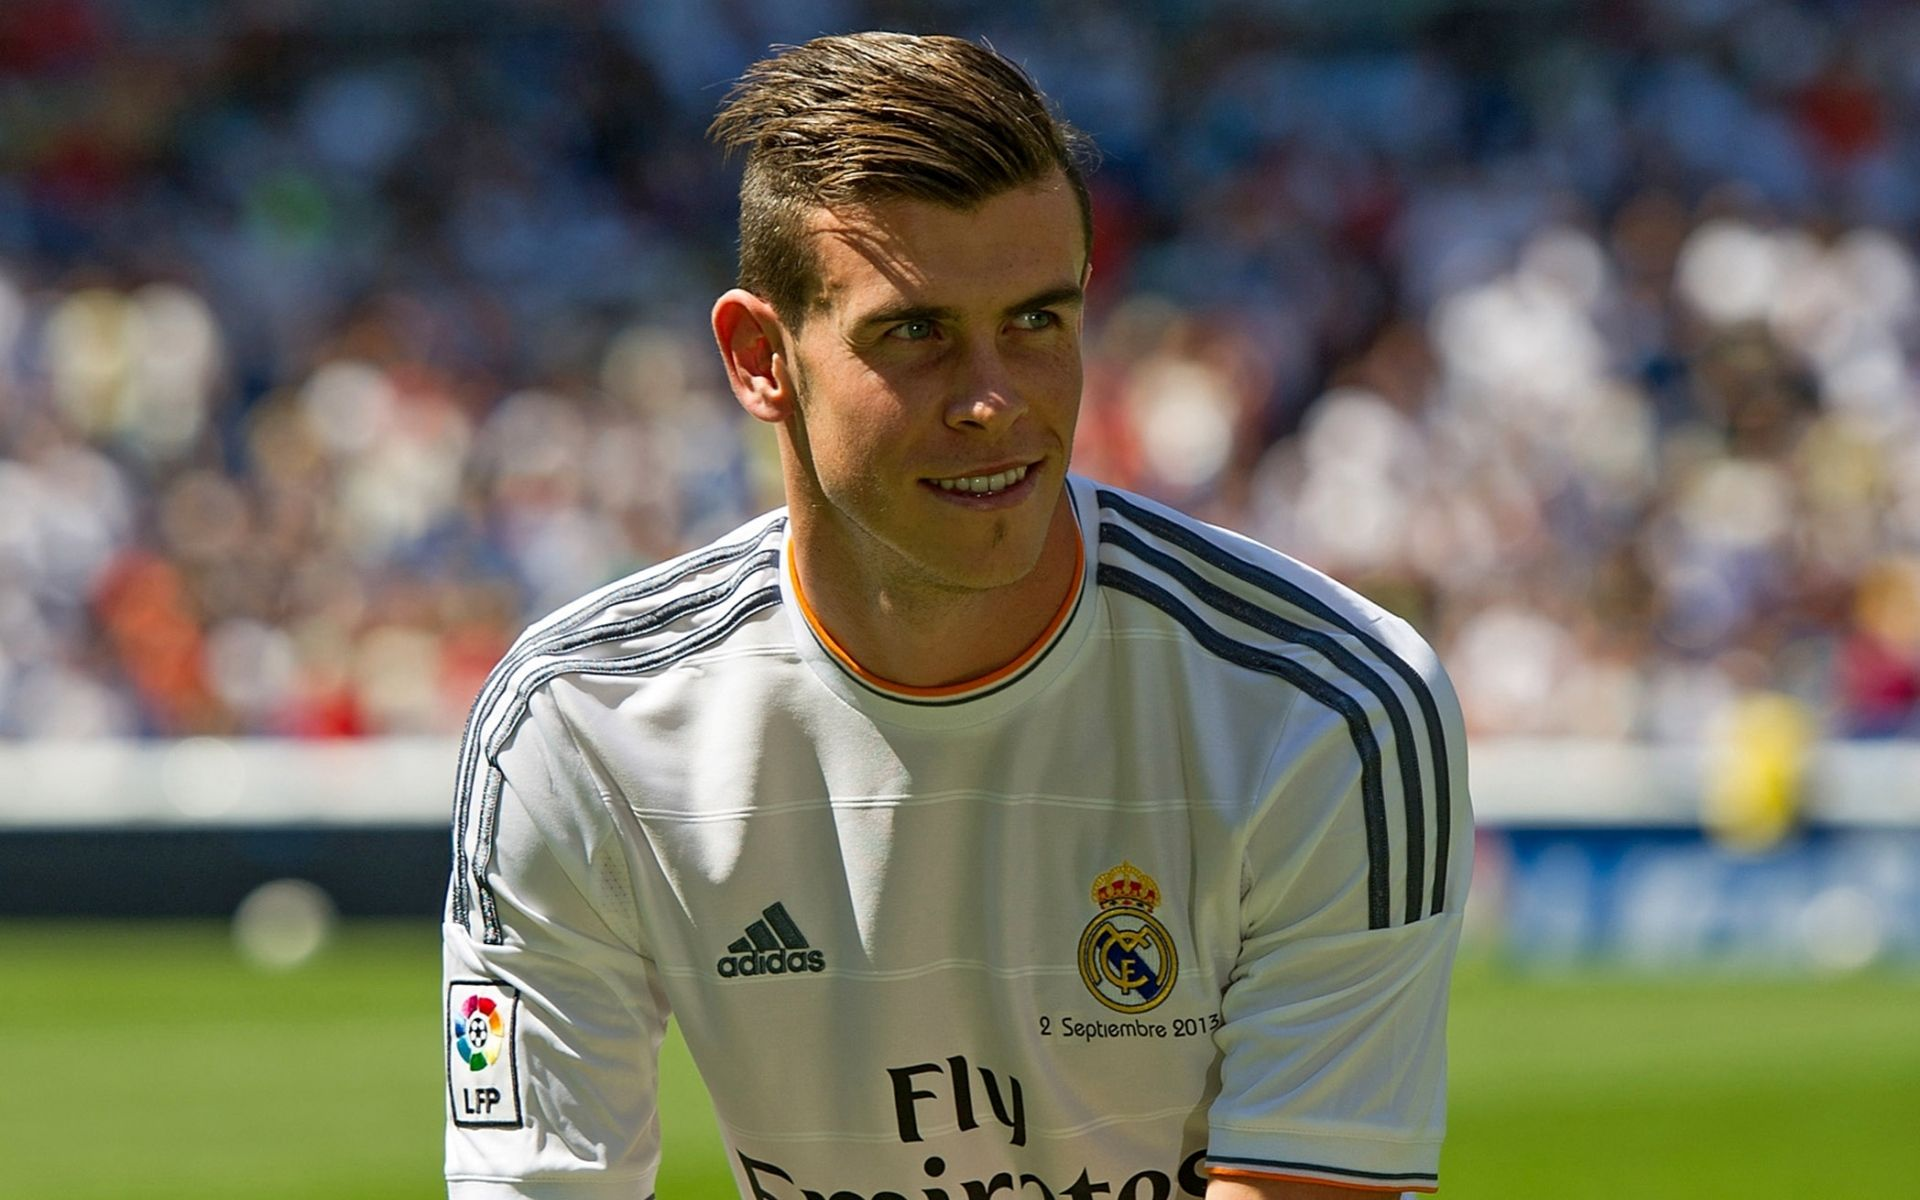 pin by jose garcia on hairstyle | soccer player hairstyles